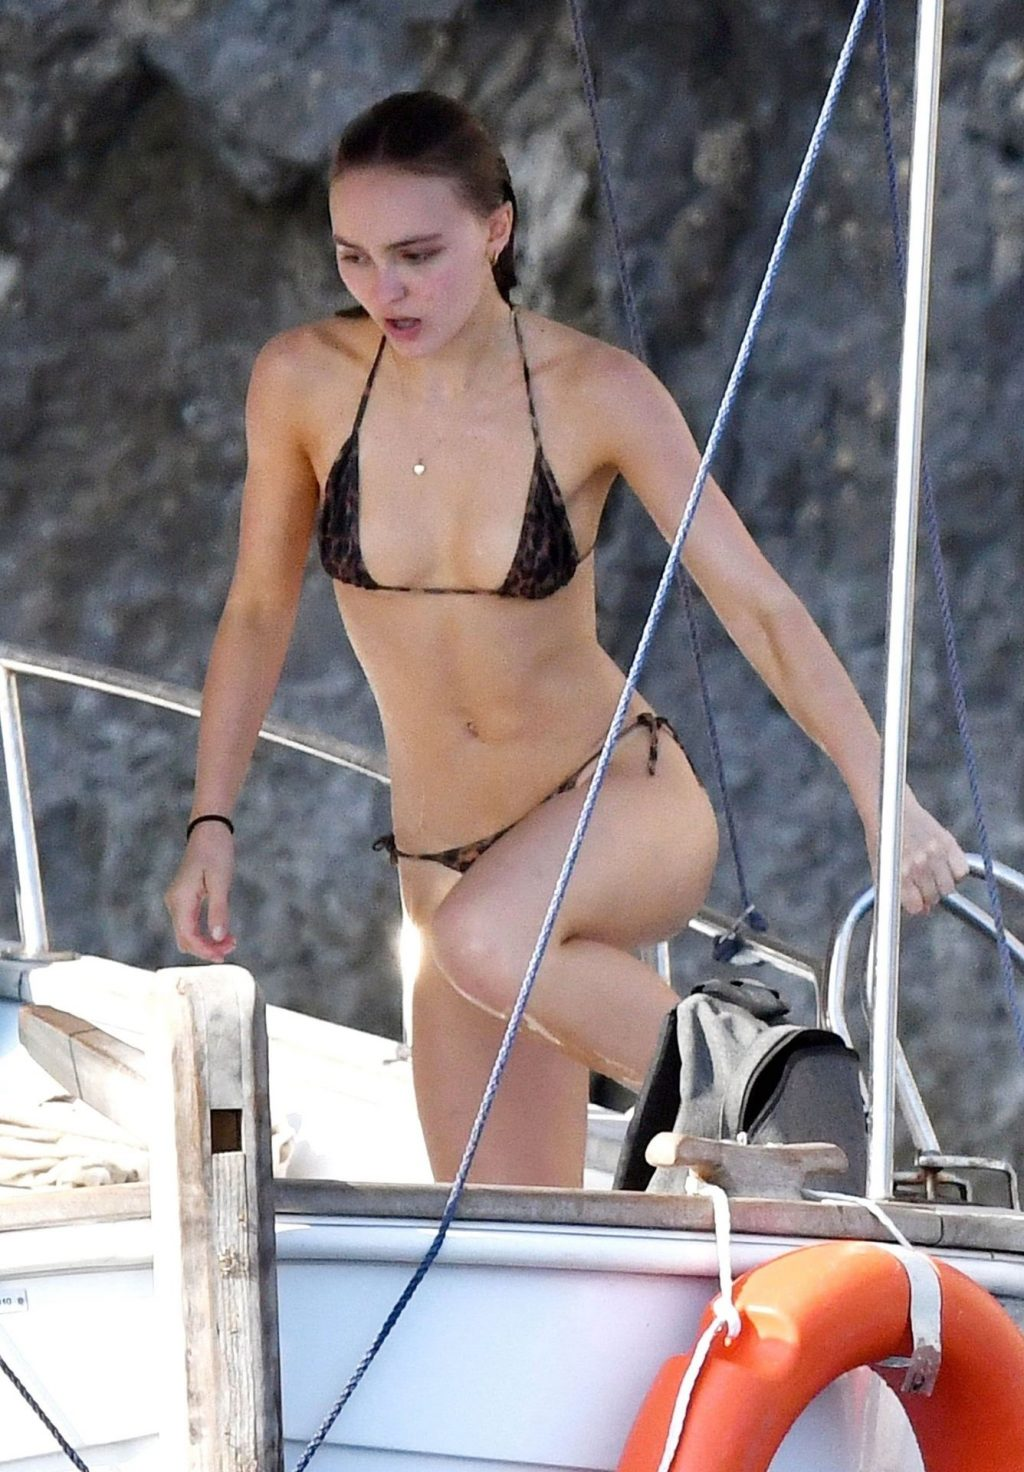 Lily Rose Depp Nude : Lily-Rose, Photos), 3x.wtf, TheFappening!